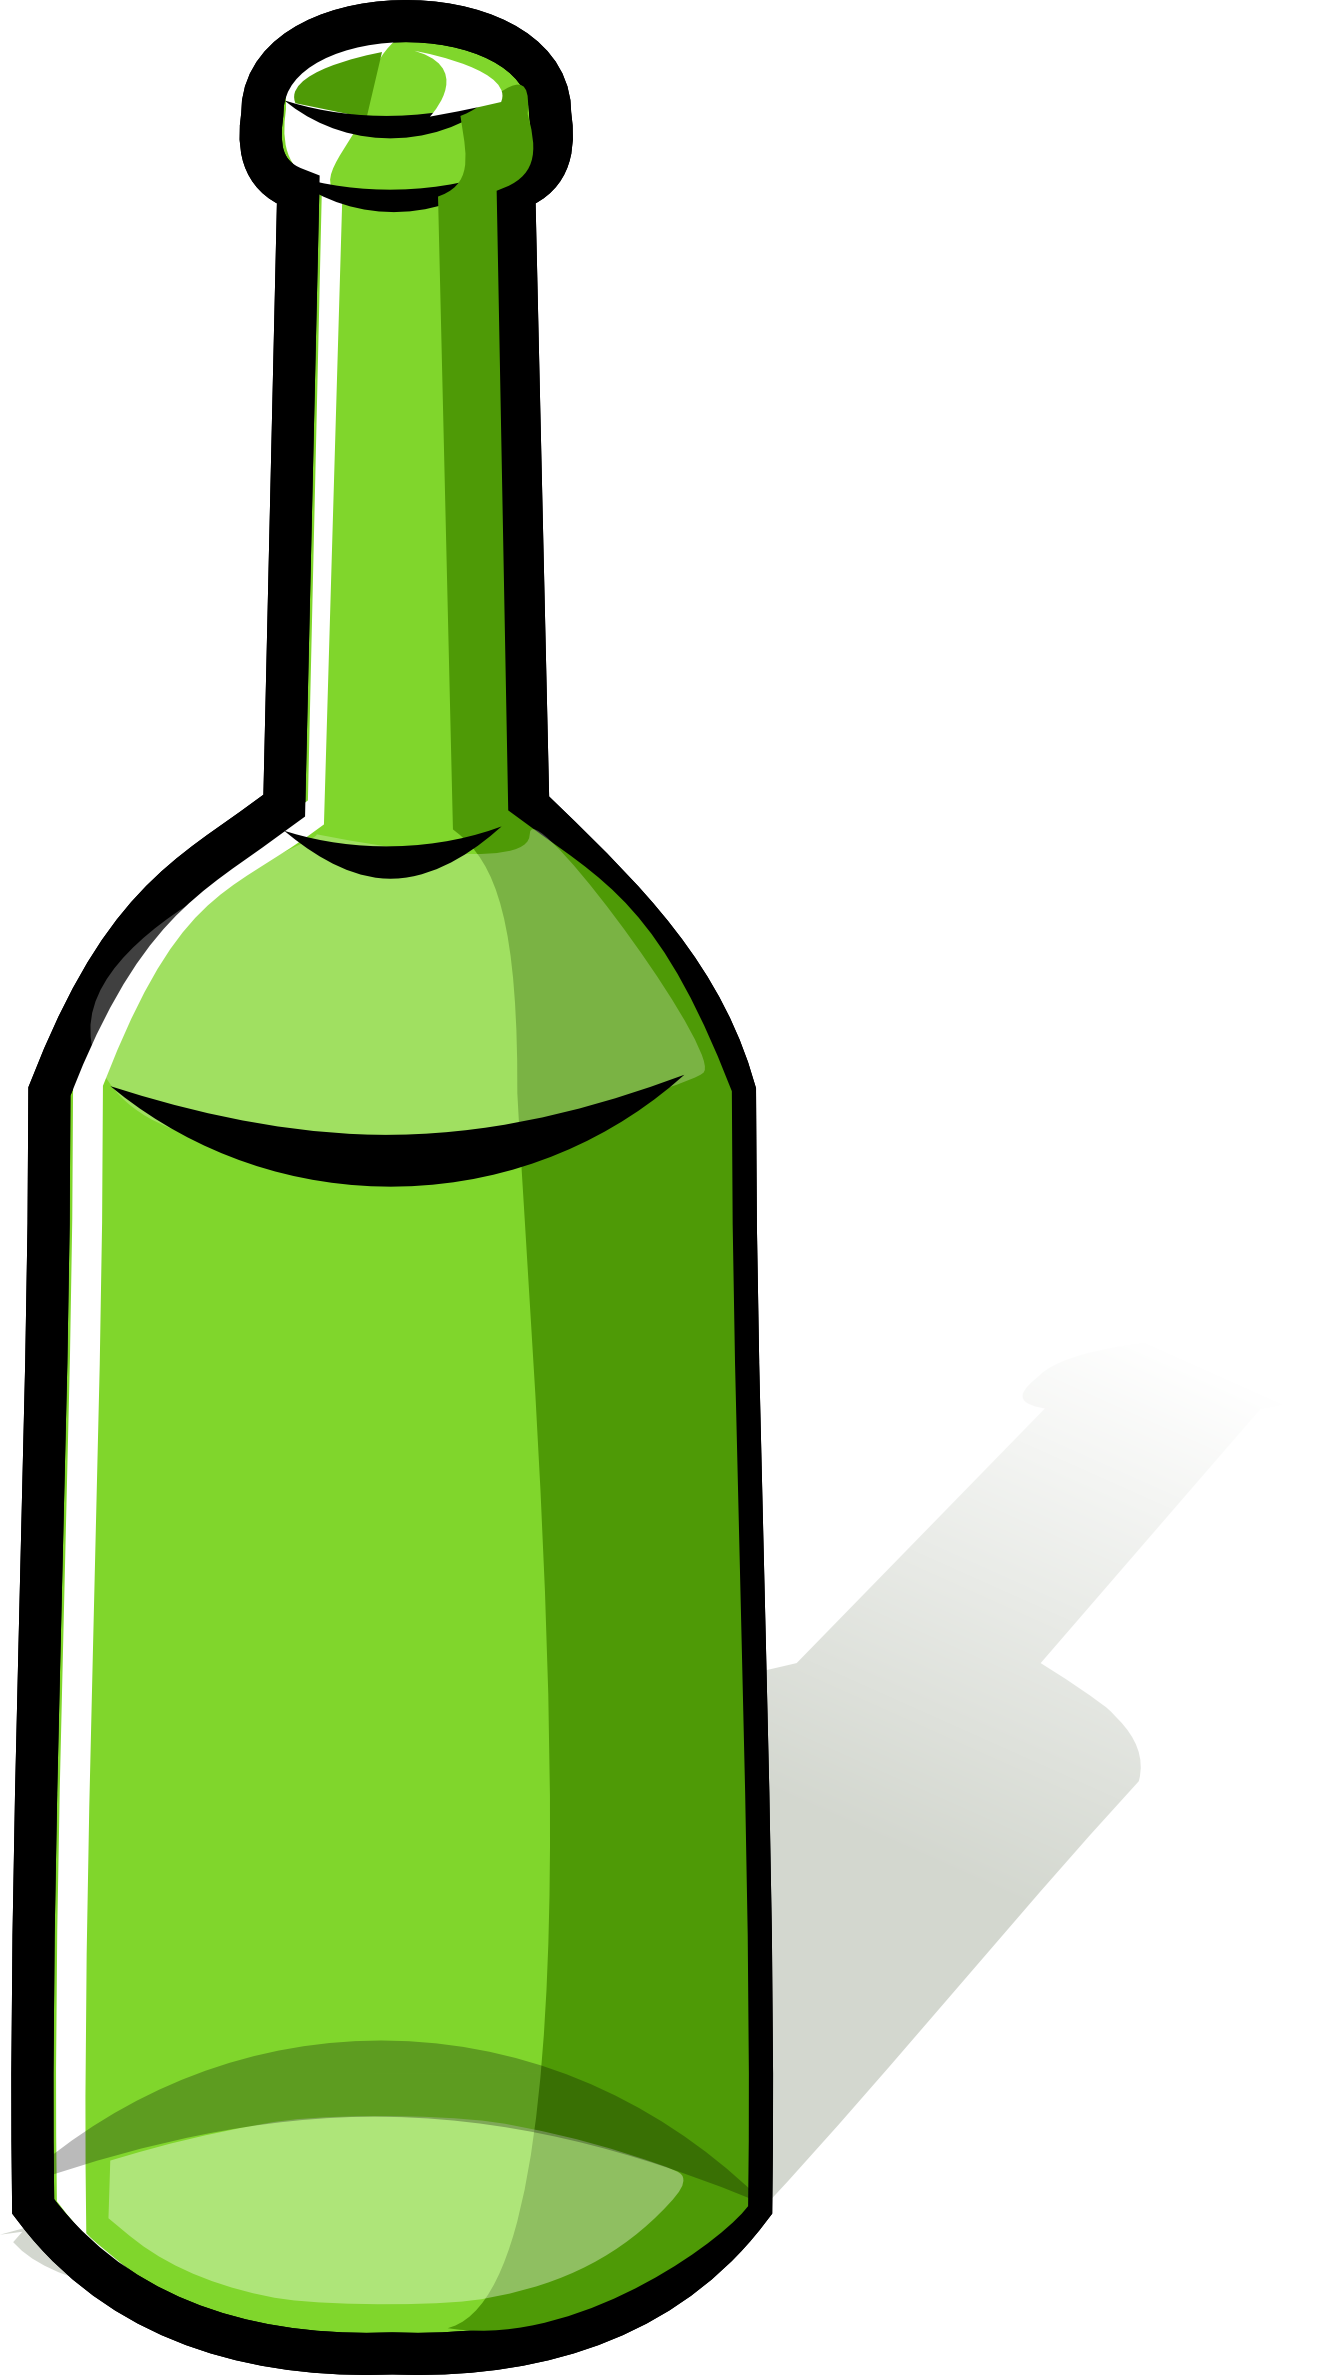 Clipart alcohol bottle png transparent stock 76 Insanely Alcohol Bottle Clip Art png transparent stock